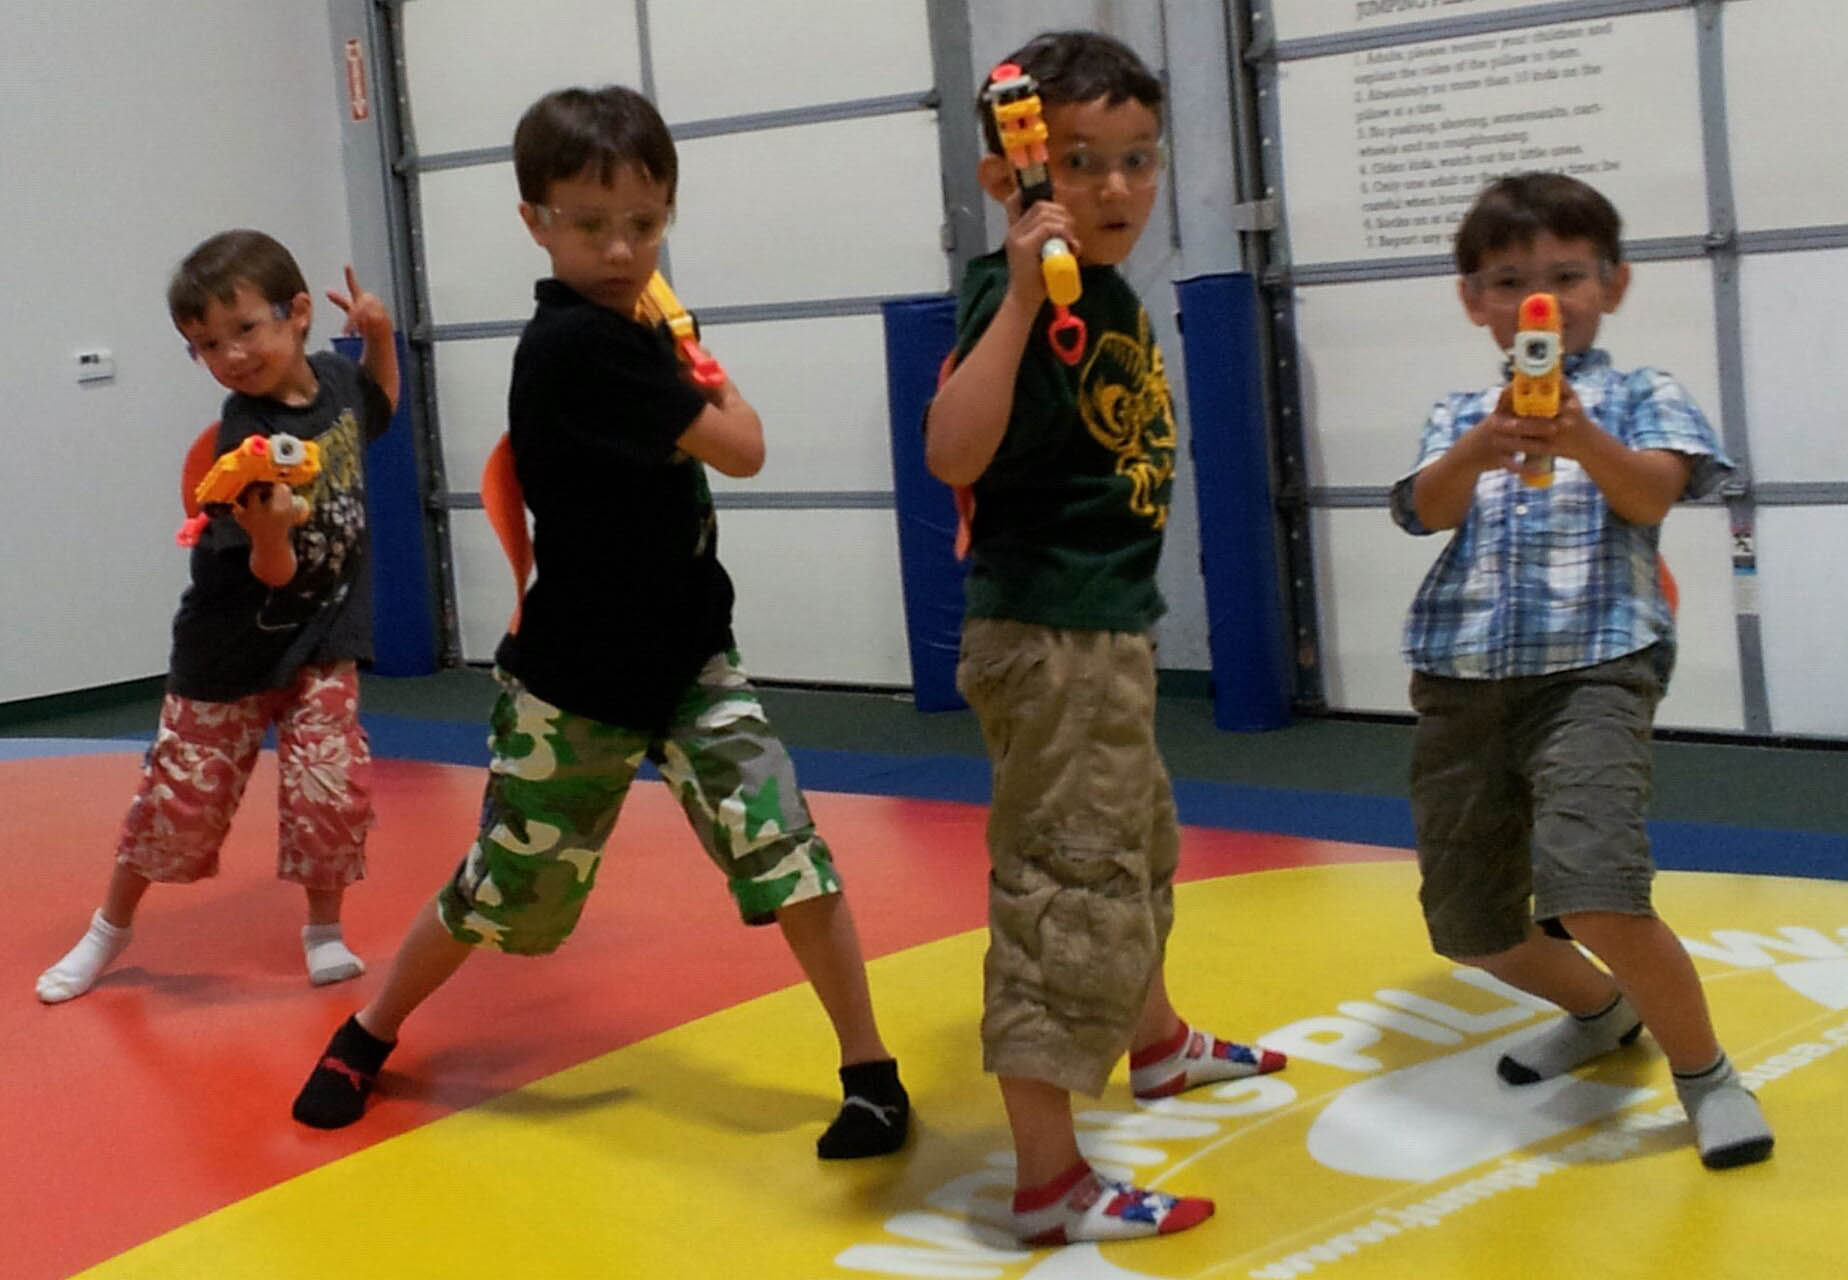 Nerf Gun Wars & Kids Nerf toy gun adventures is the focus of our Kids video  channel right now. Nerf gun wars video playlists grows as we post new Nerf  gun ...